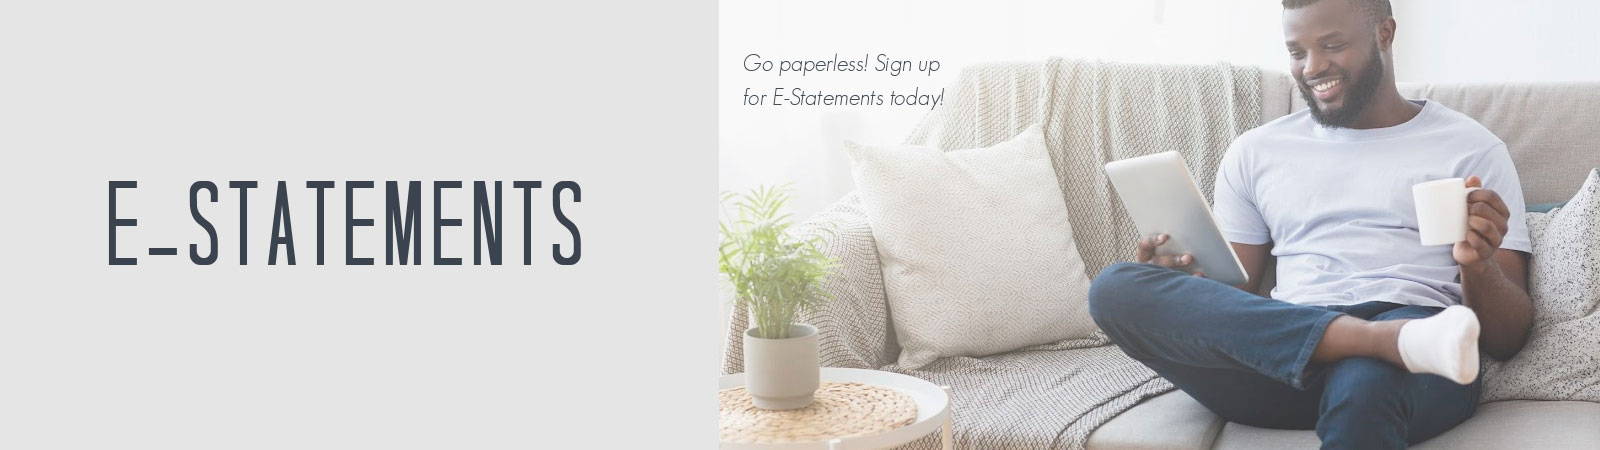 Go paperless. Sign up for e-statemetns today